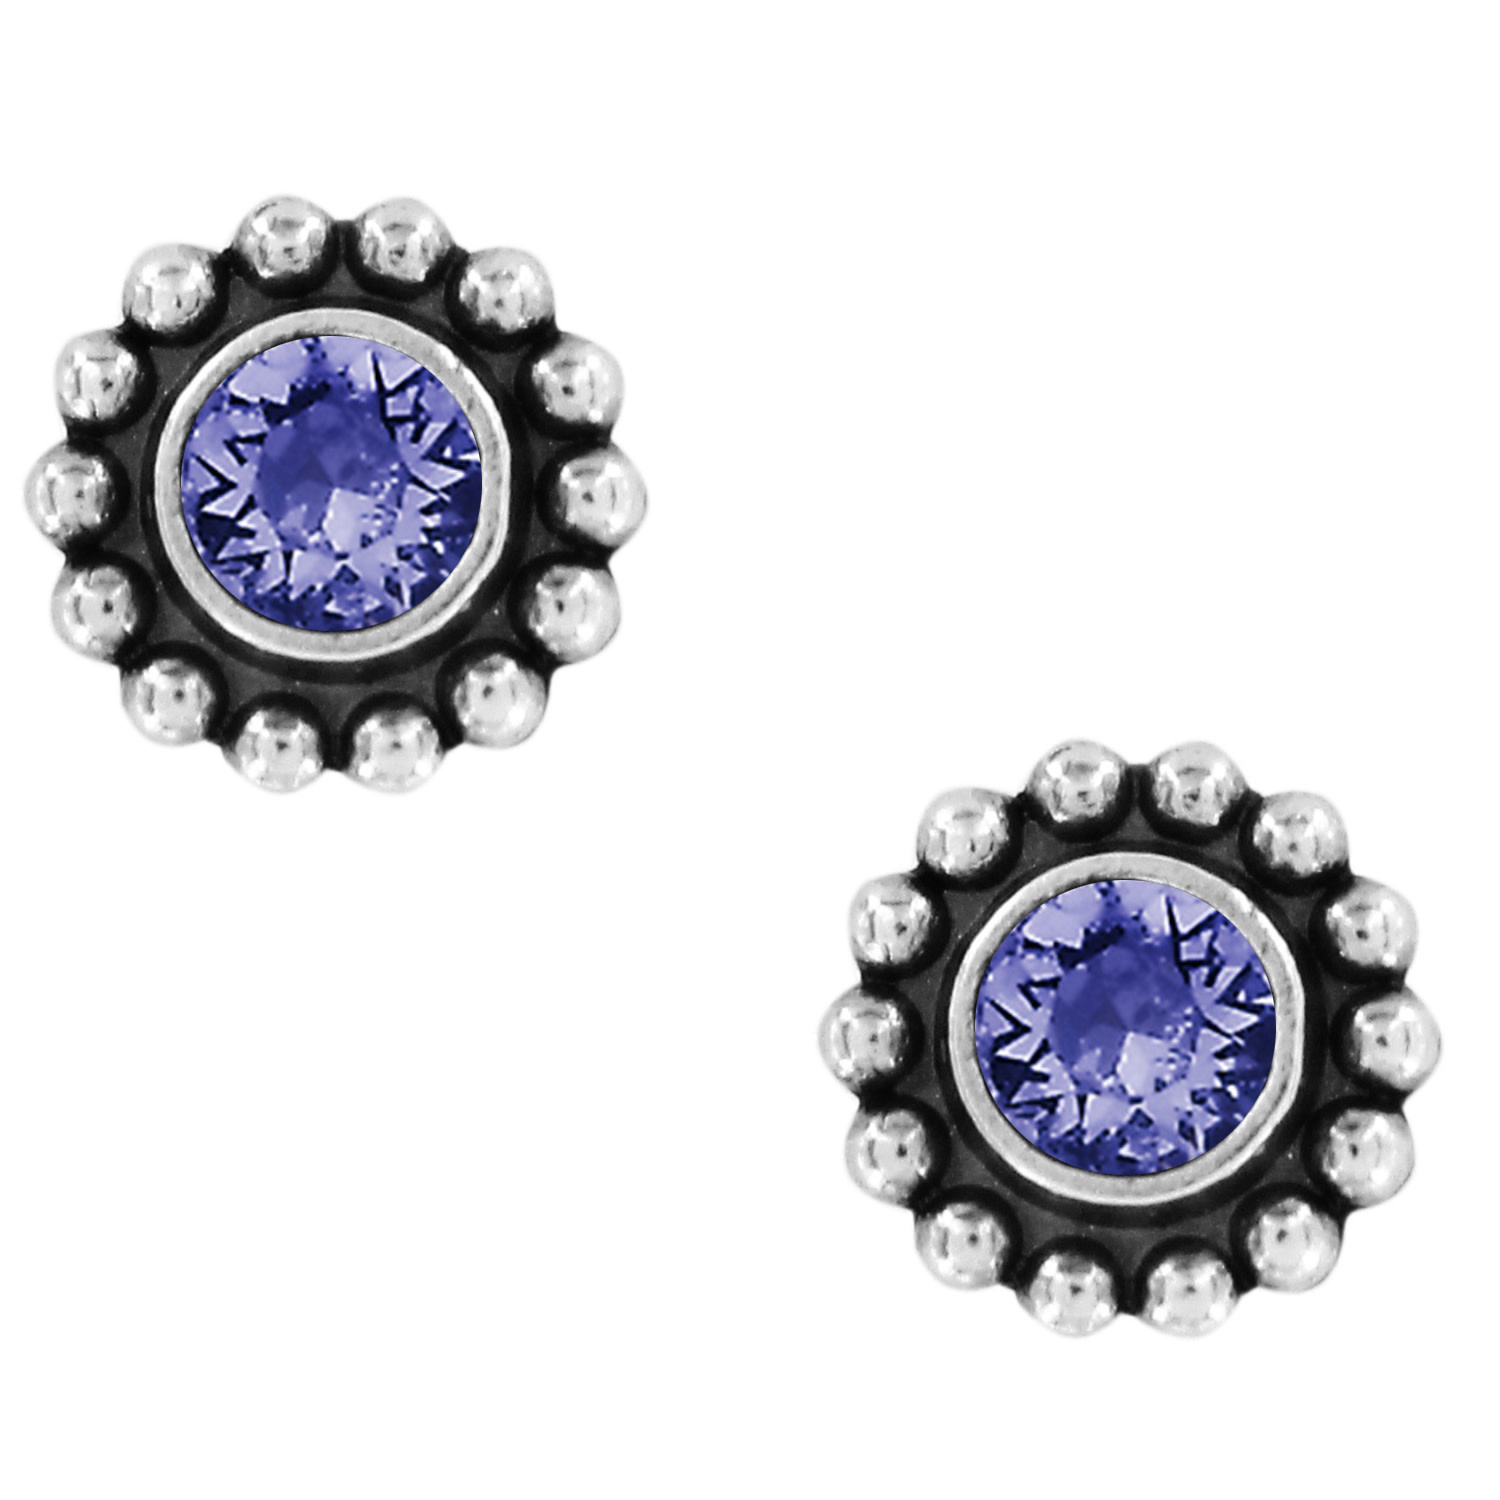 BRIGHTON TWINKLE MINI POST EARRINGS- TANZANITE